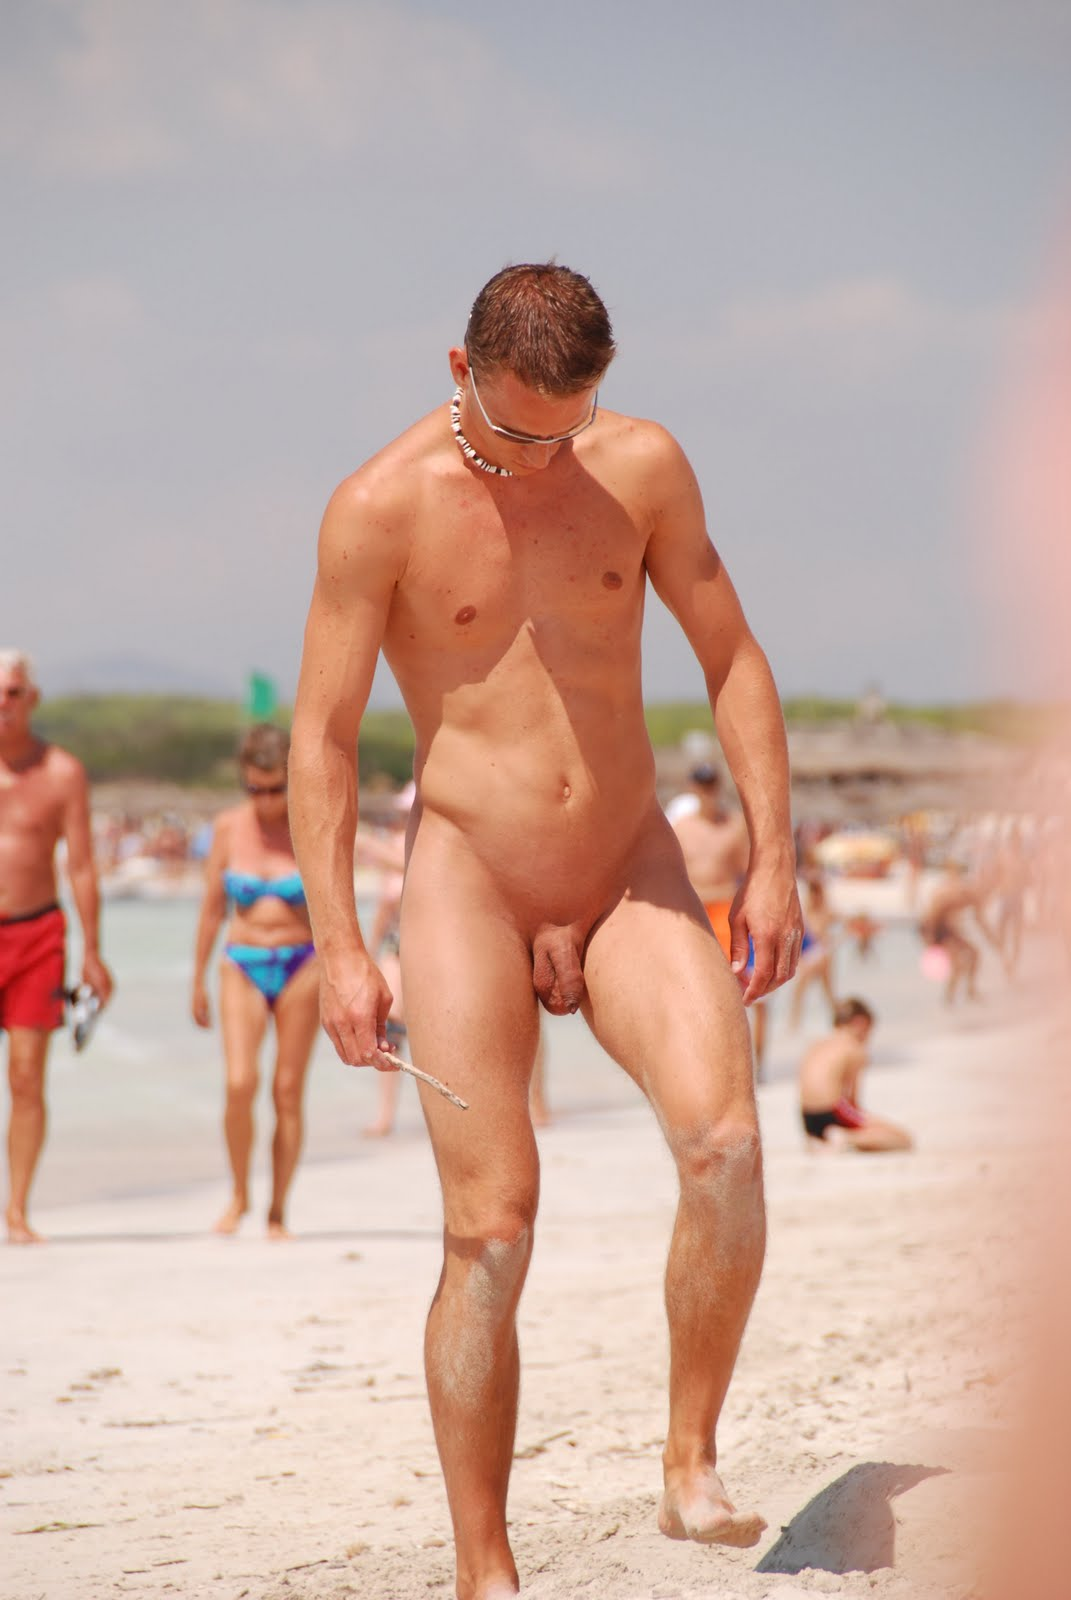 Hot Guy Nude Beach